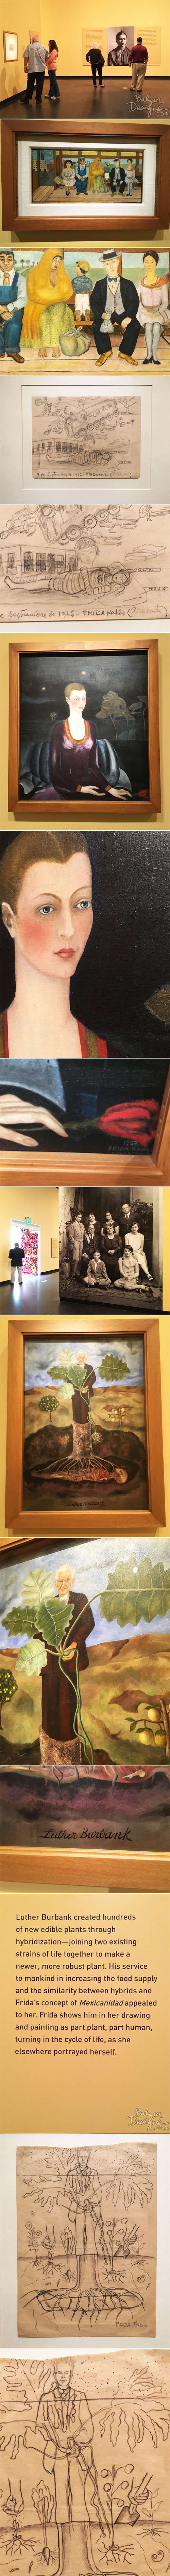 From the Balzer Designs Blog: Frida Kahlo at the Dali Museum